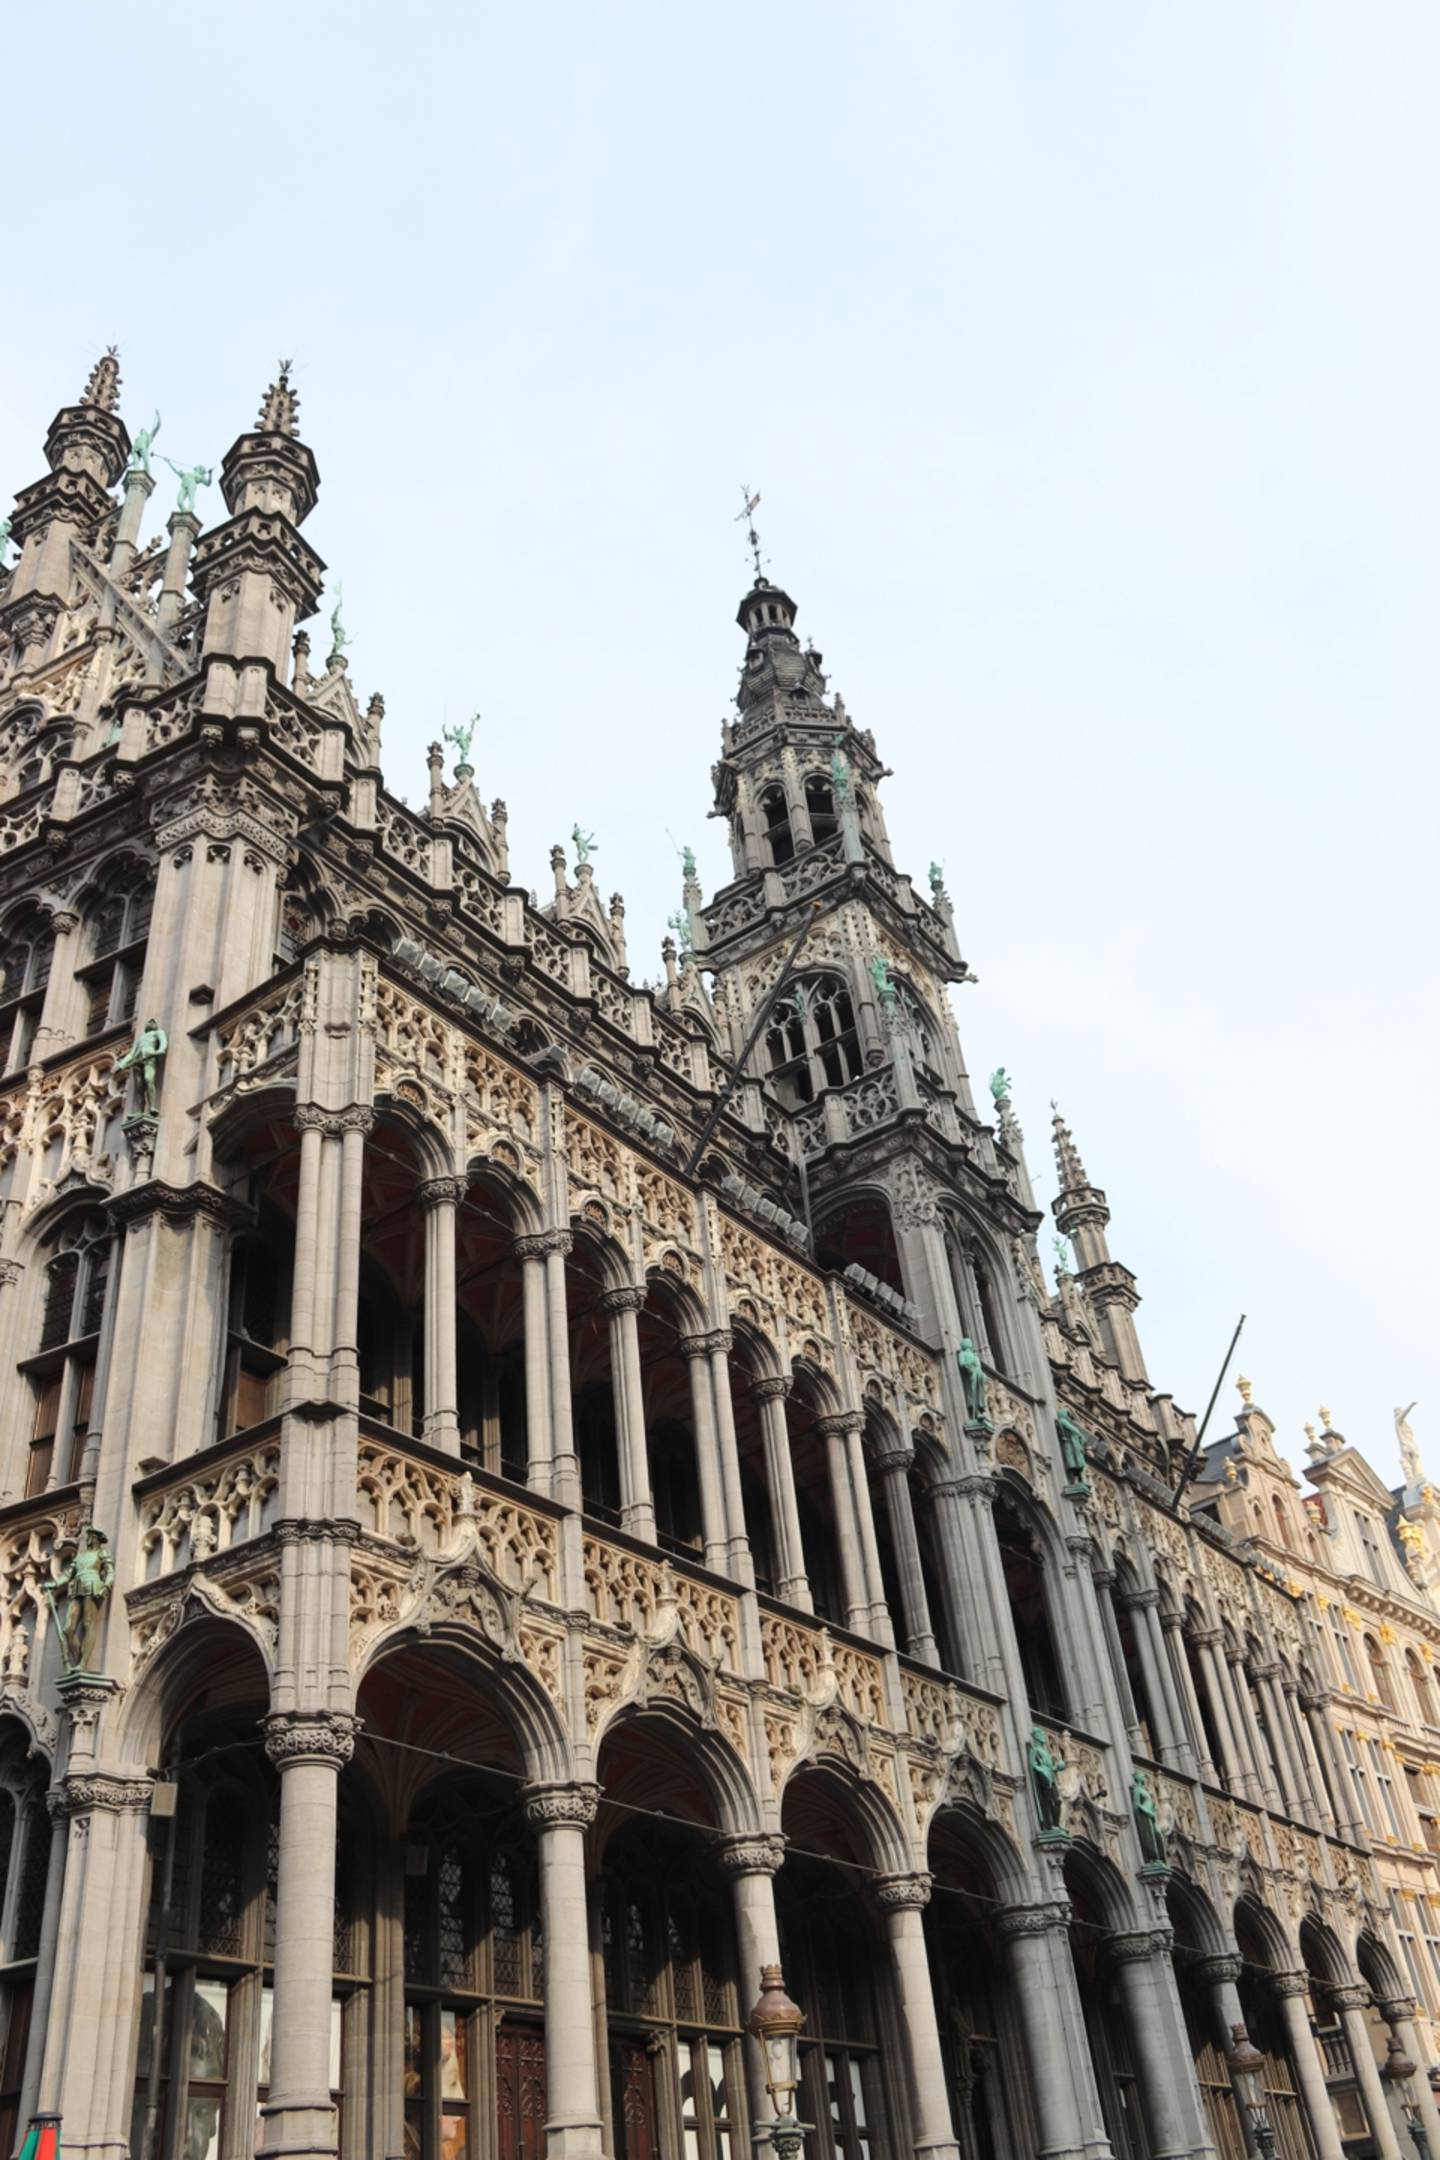 Building at the Grand Place in Brussels